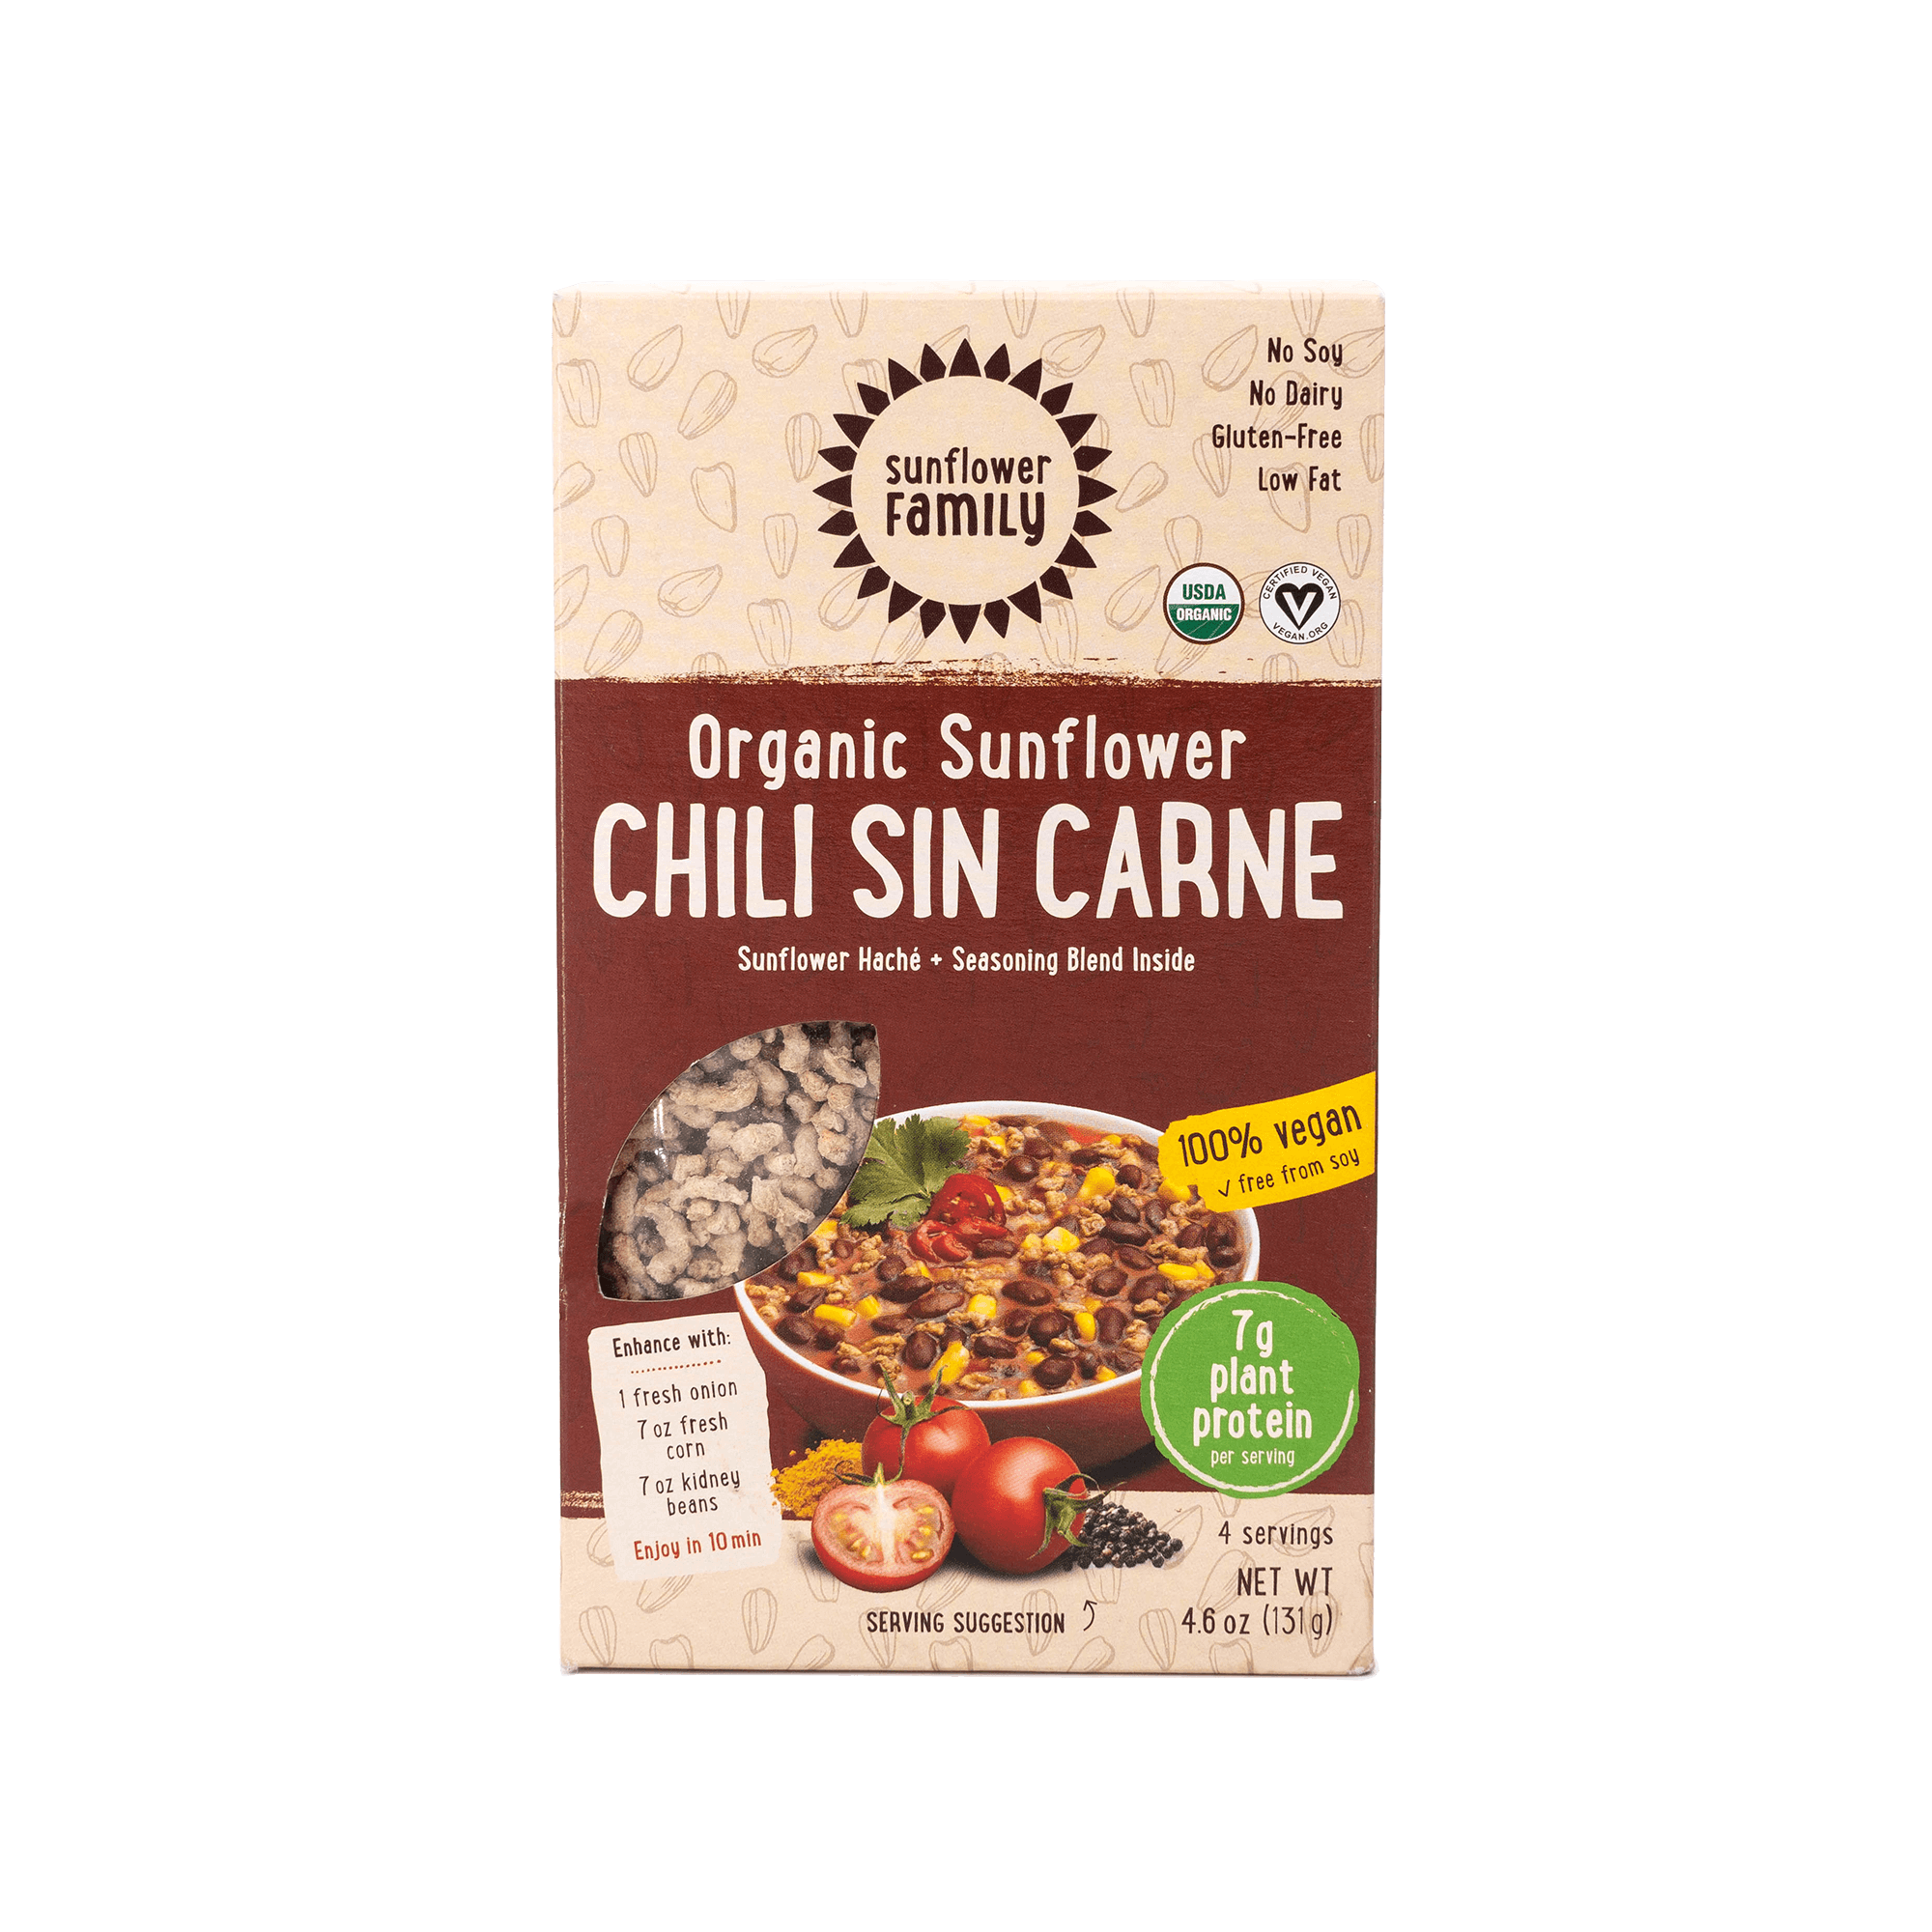 Organic Sunflower Chili Sin Carne